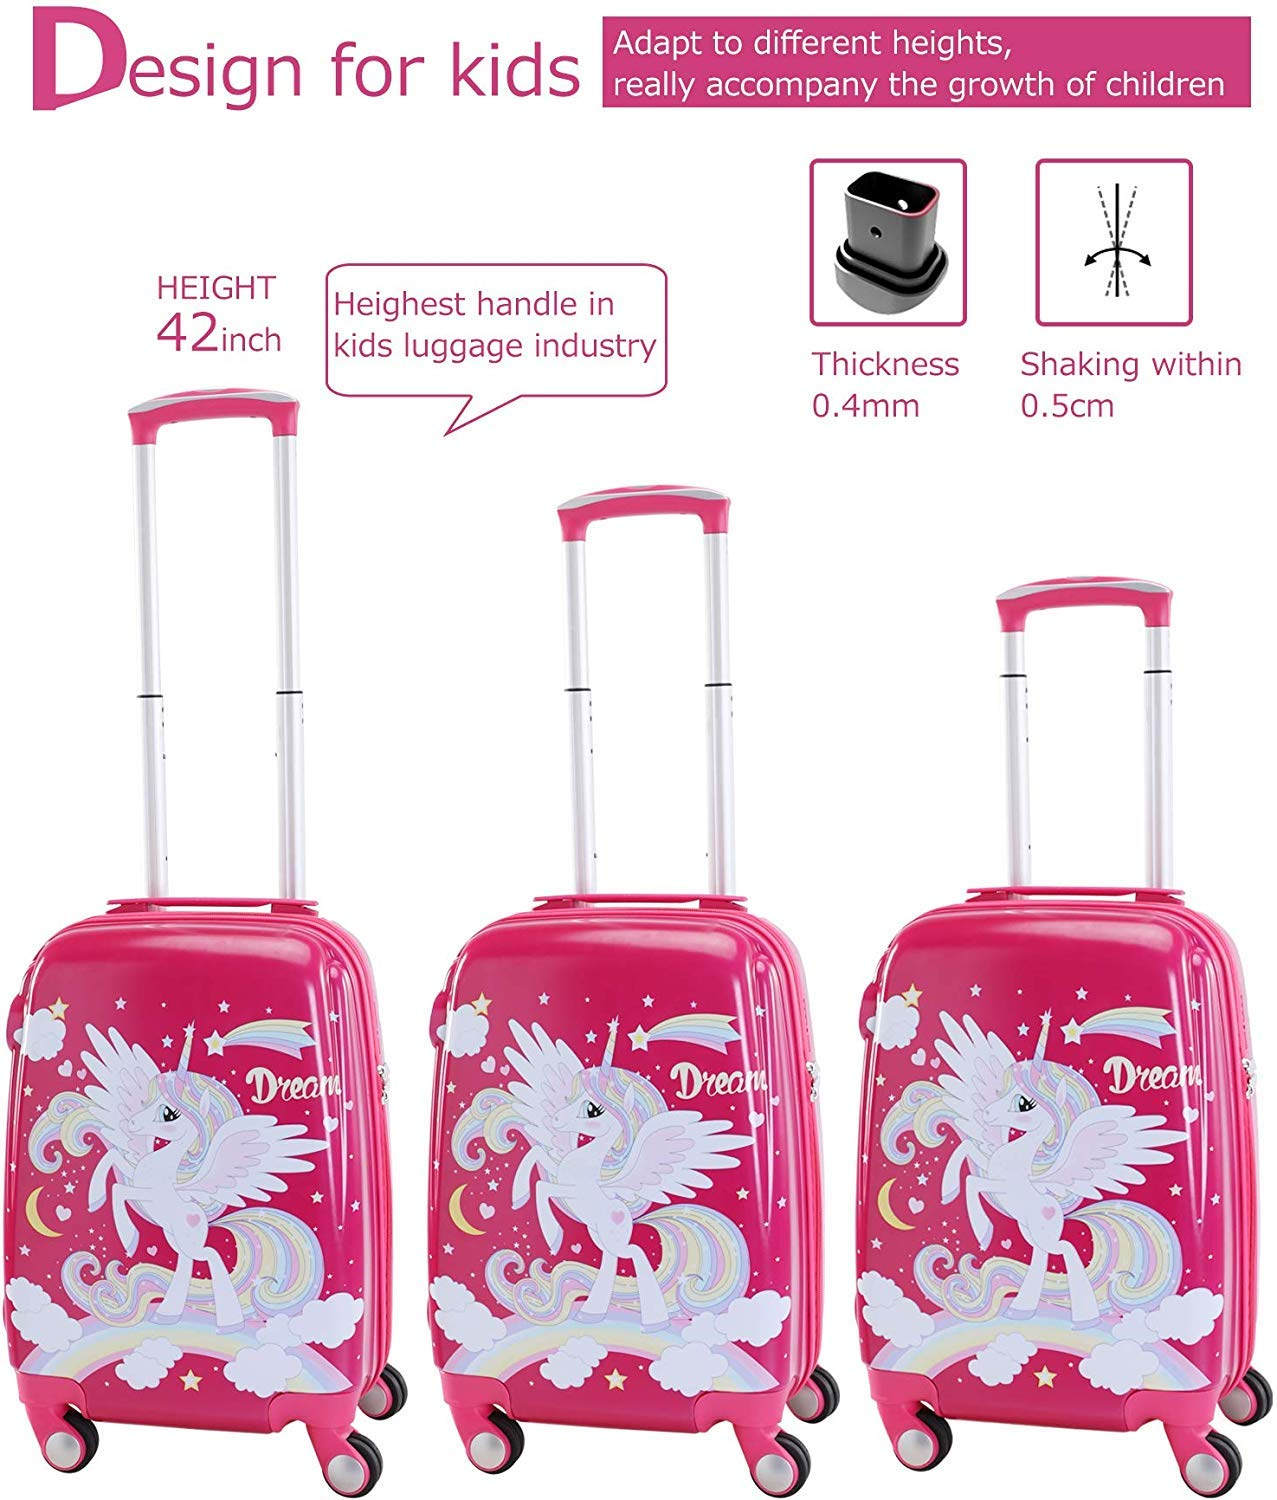 Lttxin Kids suitcase 19 inch Polycarbonate Carry On Luggage Lovely Hard Shell upgrade perfect printing unicorn